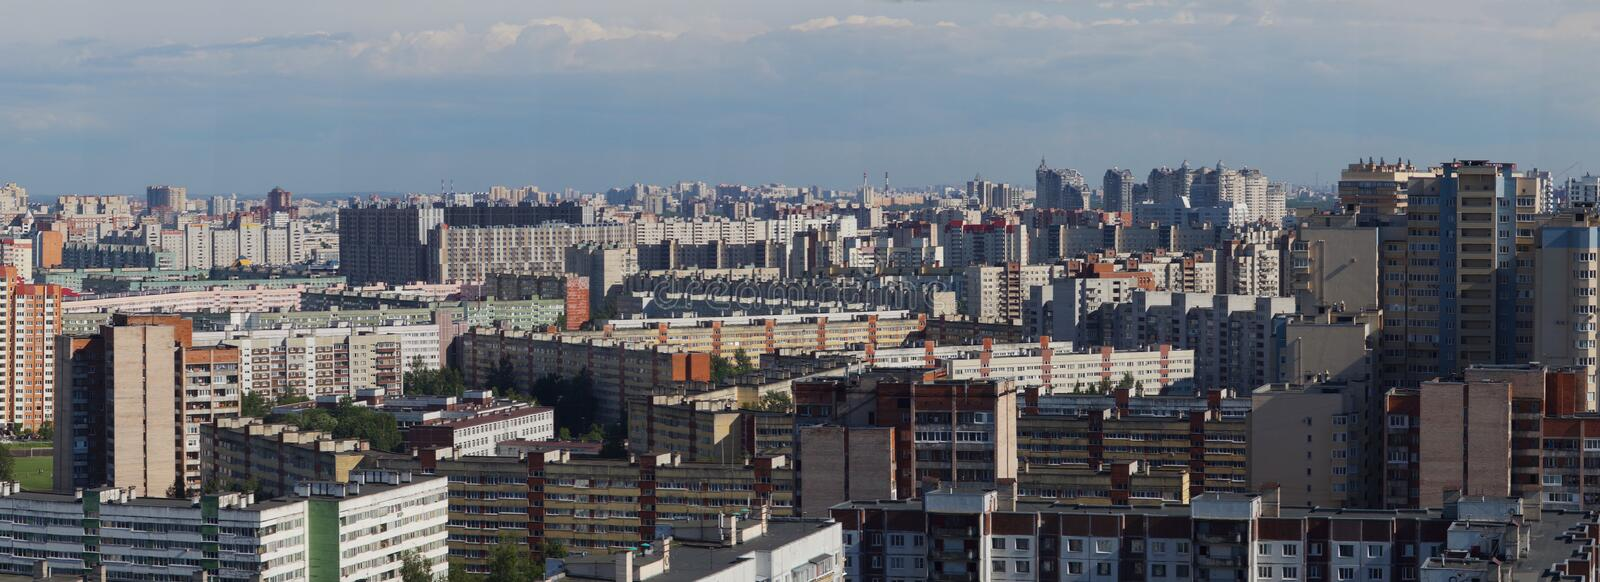 Panorama of a city block with high multi-storey apartment buildings, the area of the big city from a height.  stock photography